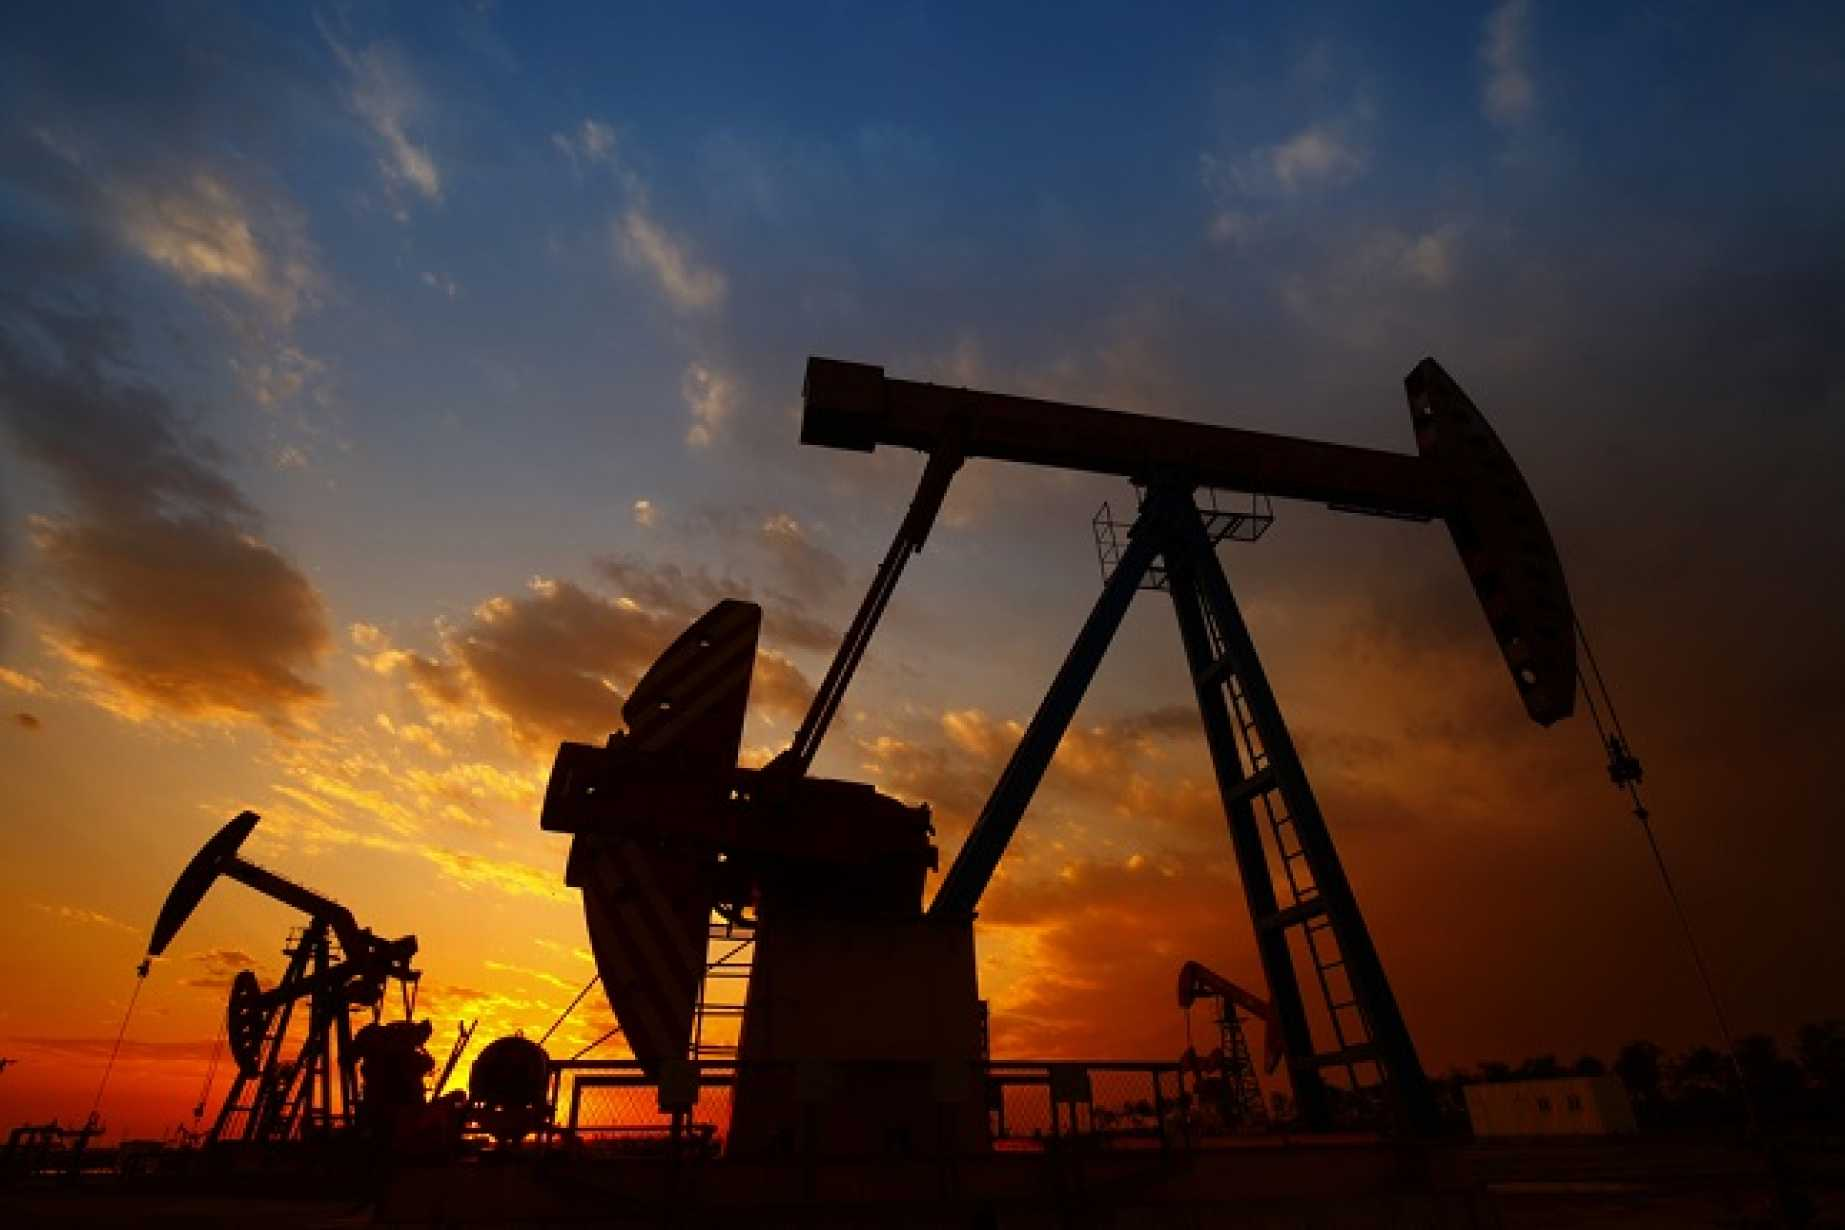 Crude Oil Price Forecast - Crude oil markets continue to show strength